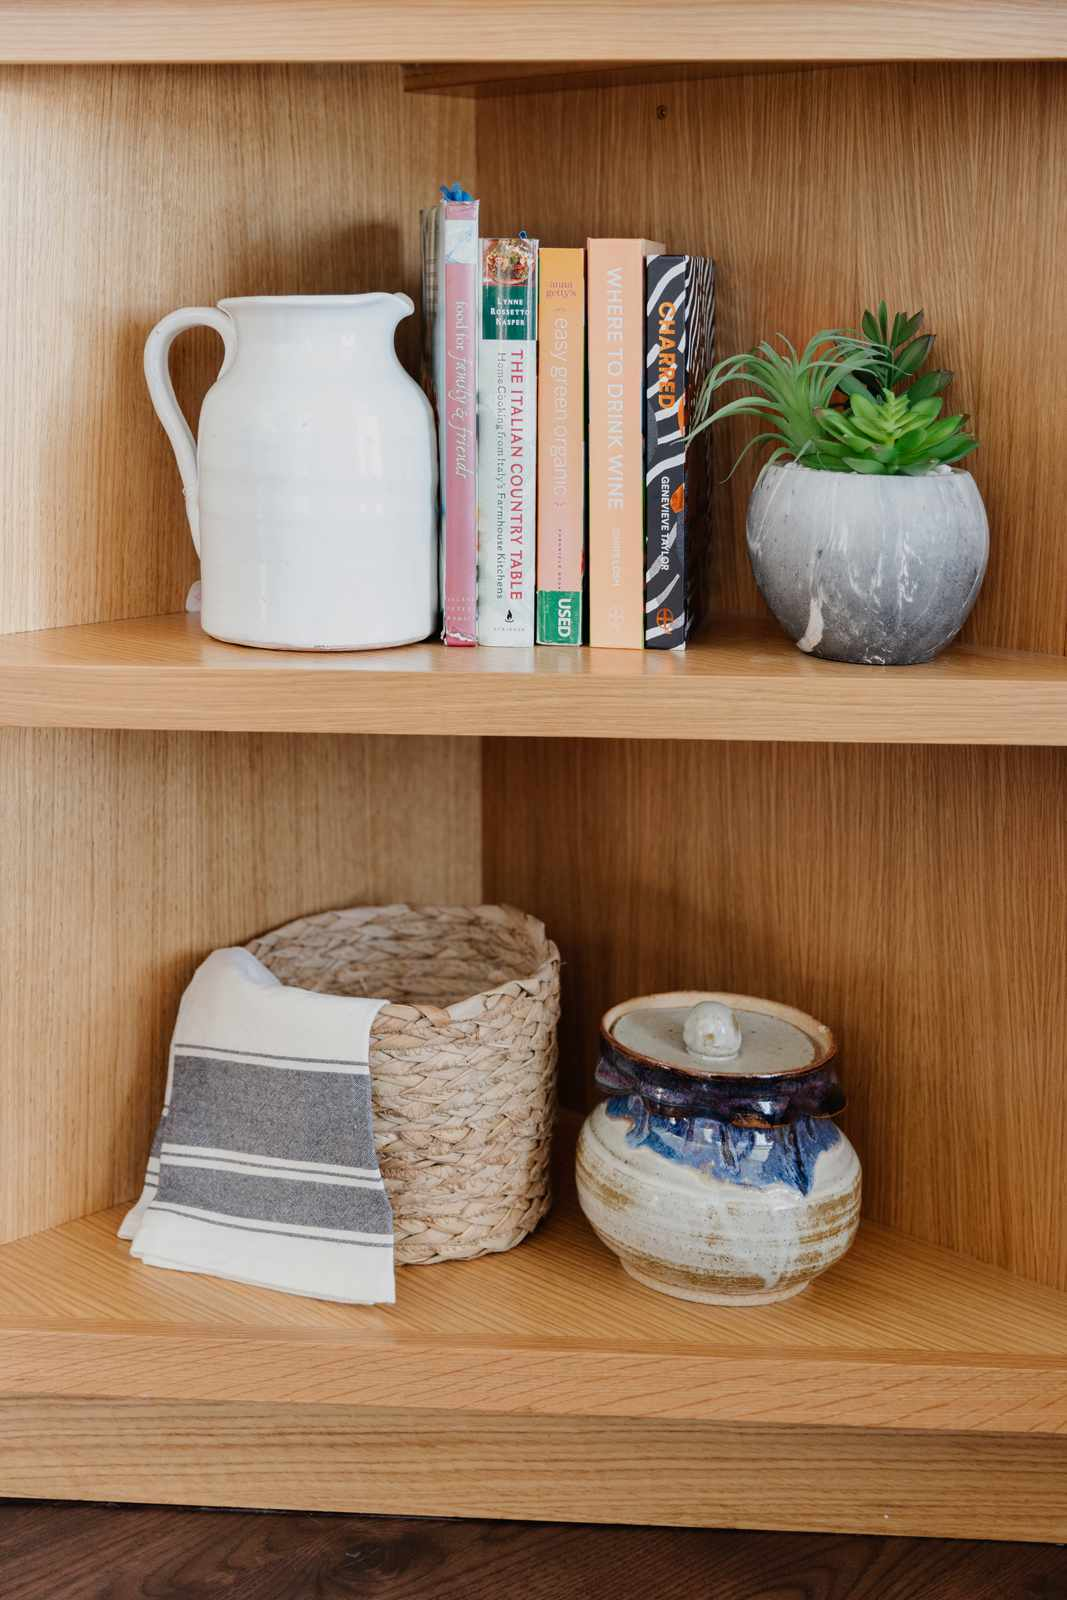 wooden corner shelf with cookbooks, plant, and other small decor items